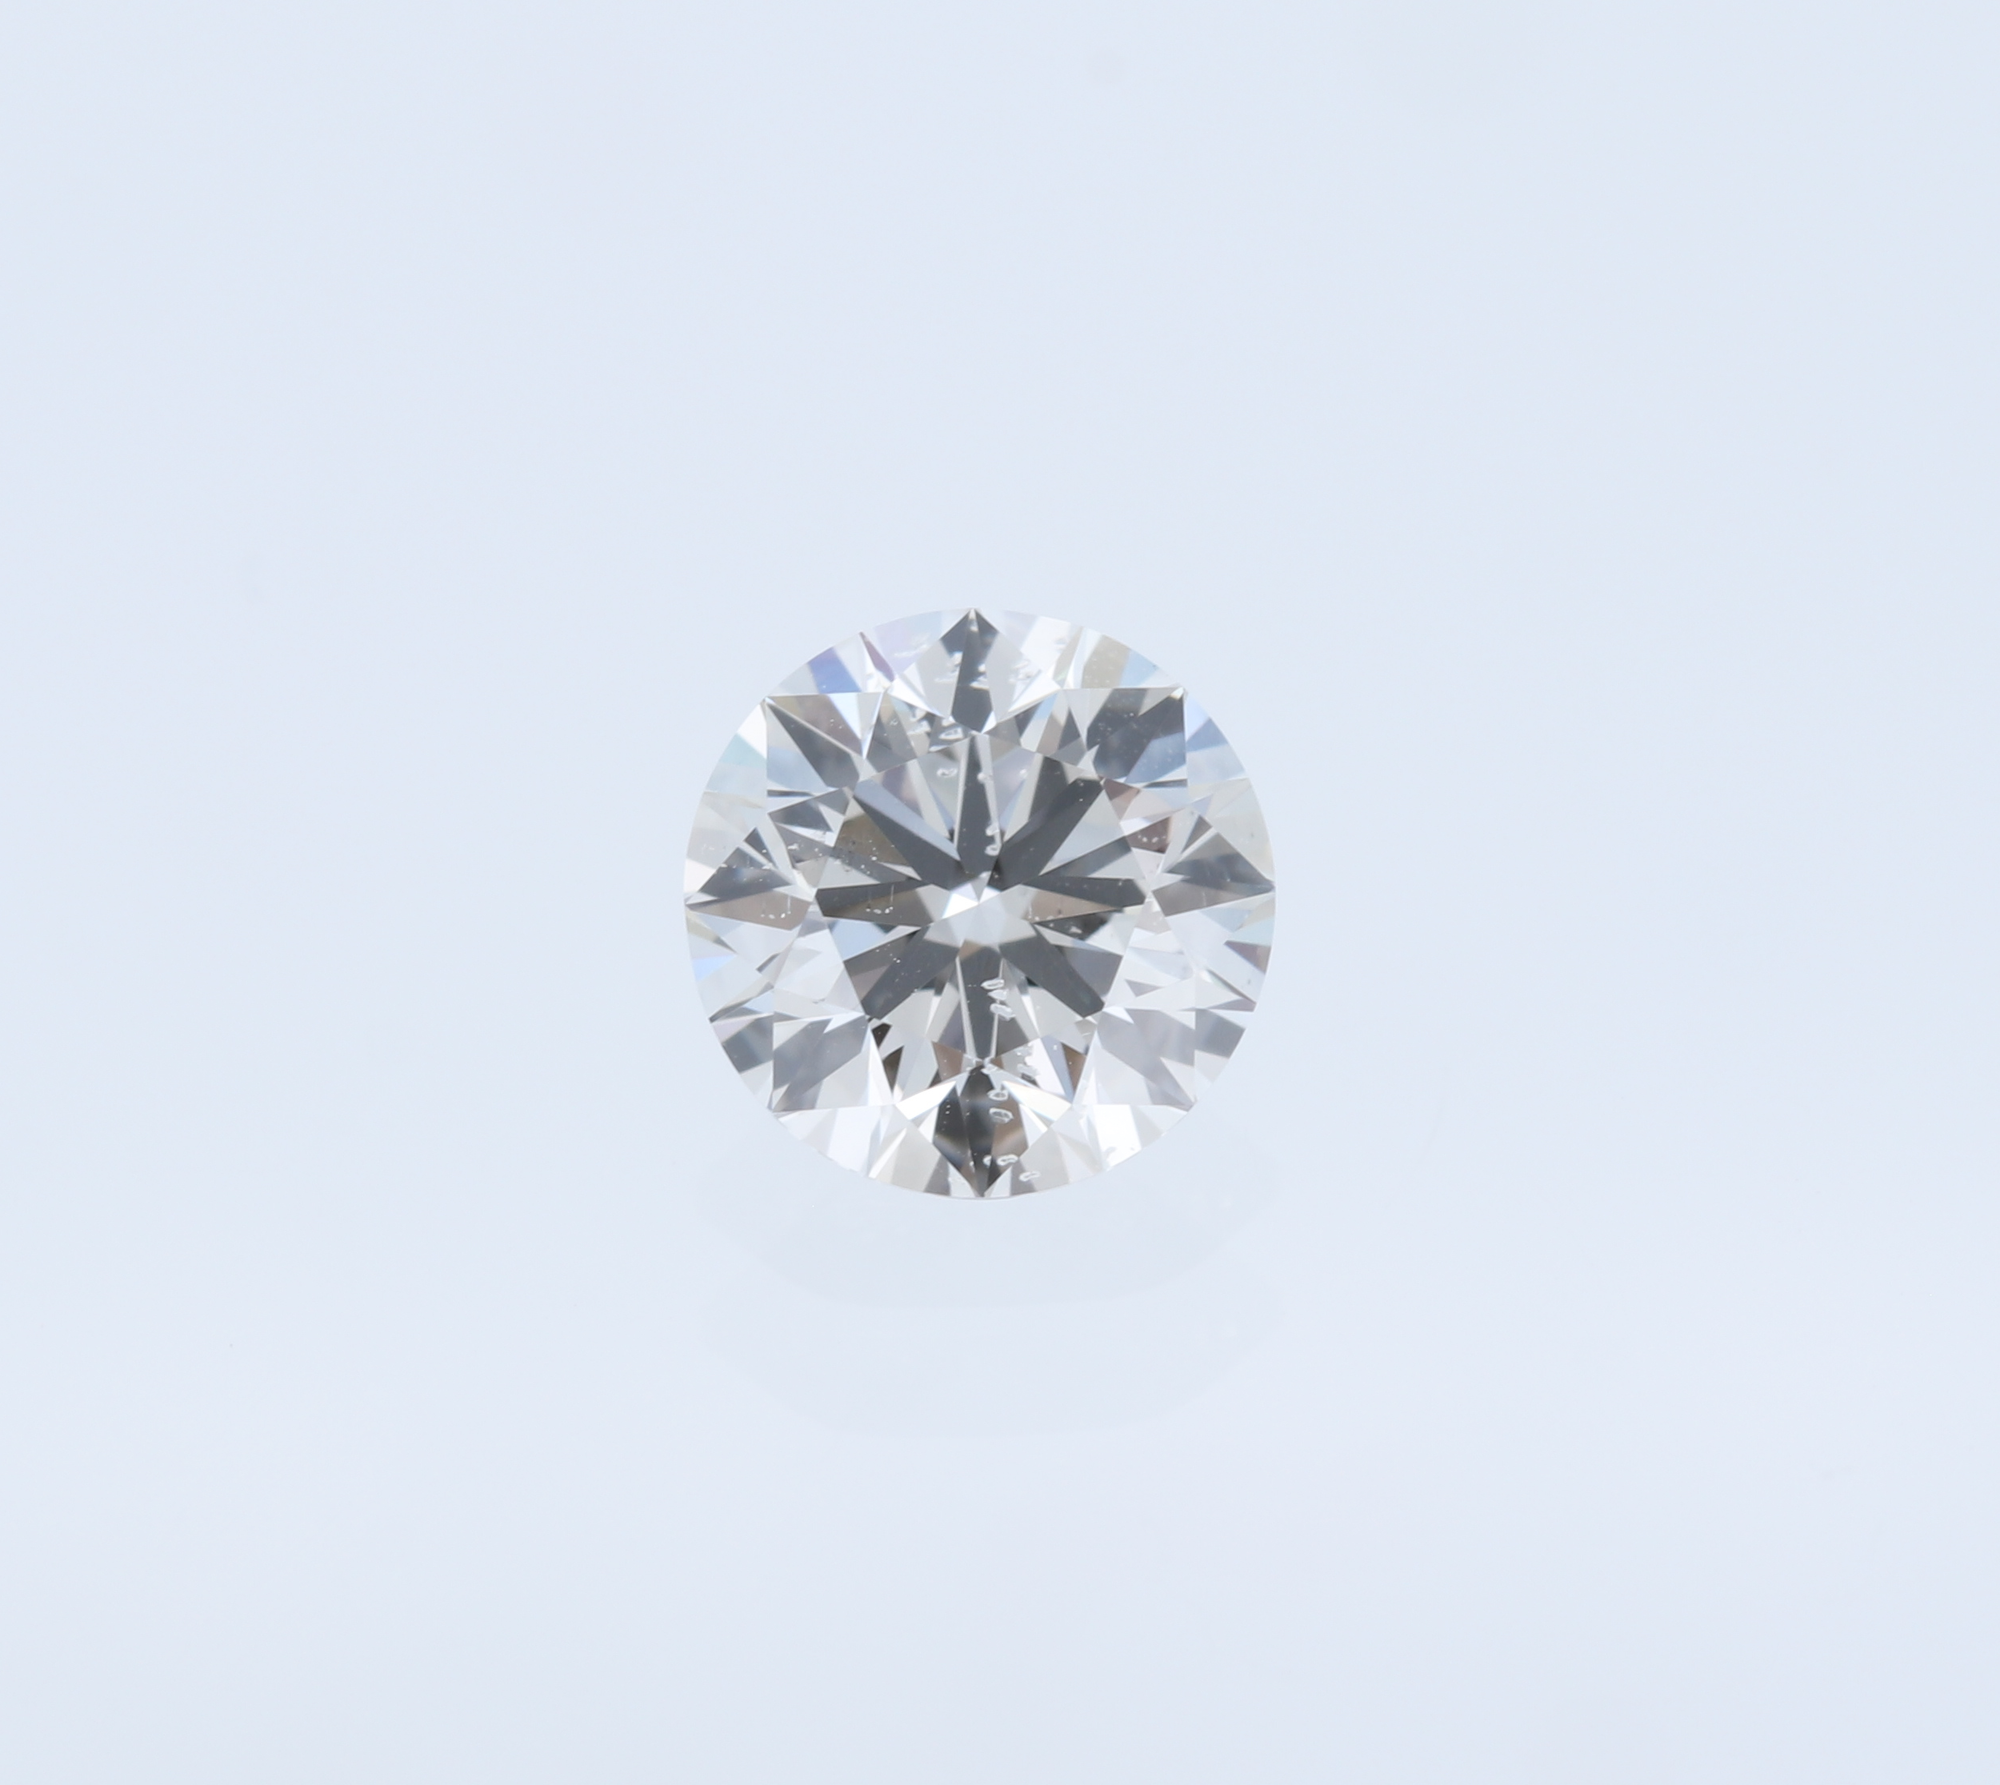 Round Brilliant Cut GIA Certified Diamond - 0.91 cts